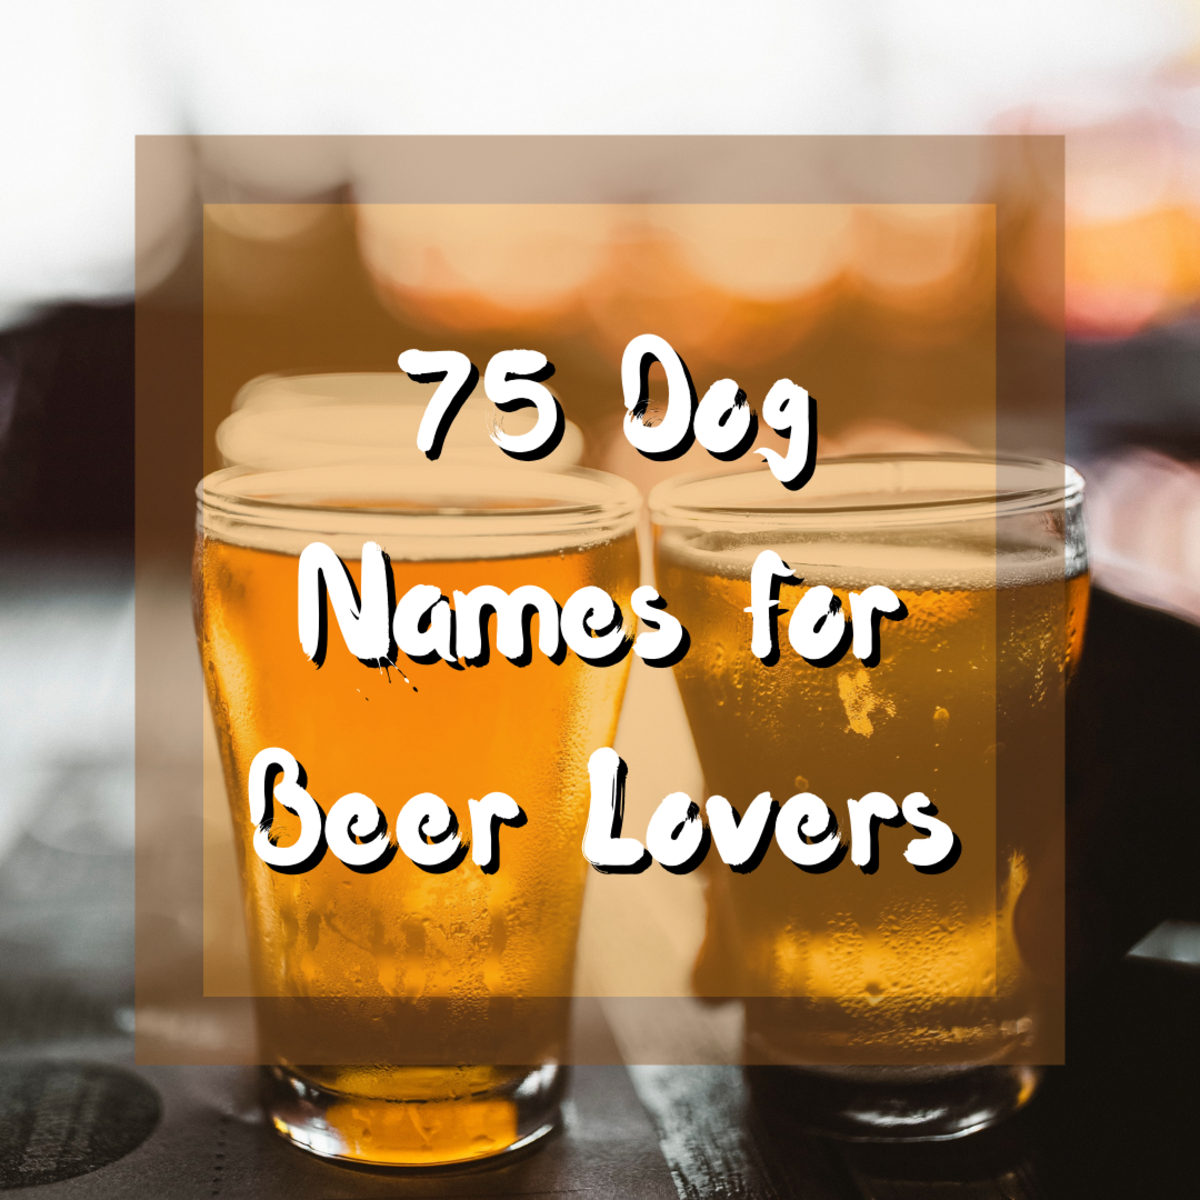 Read on to discover 75 great names for your dog that are inspired by all things beer! Beer lovers rejoice!